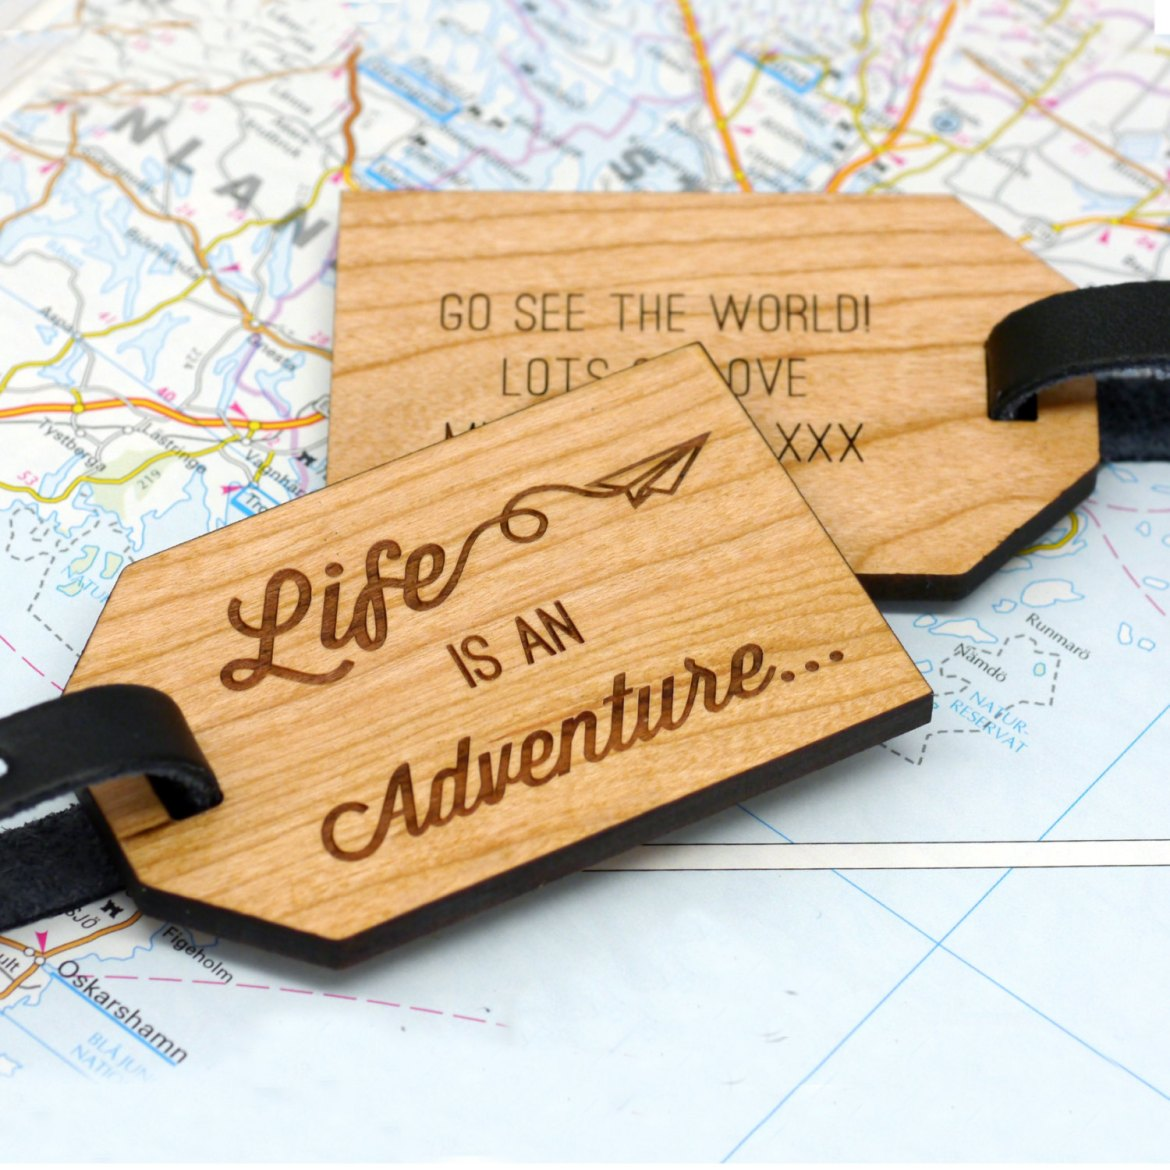 personalized luggage tag | gifts bridesmaids travel | http://emmalinebride.com/gifts/gifts-bridesmaids-travel